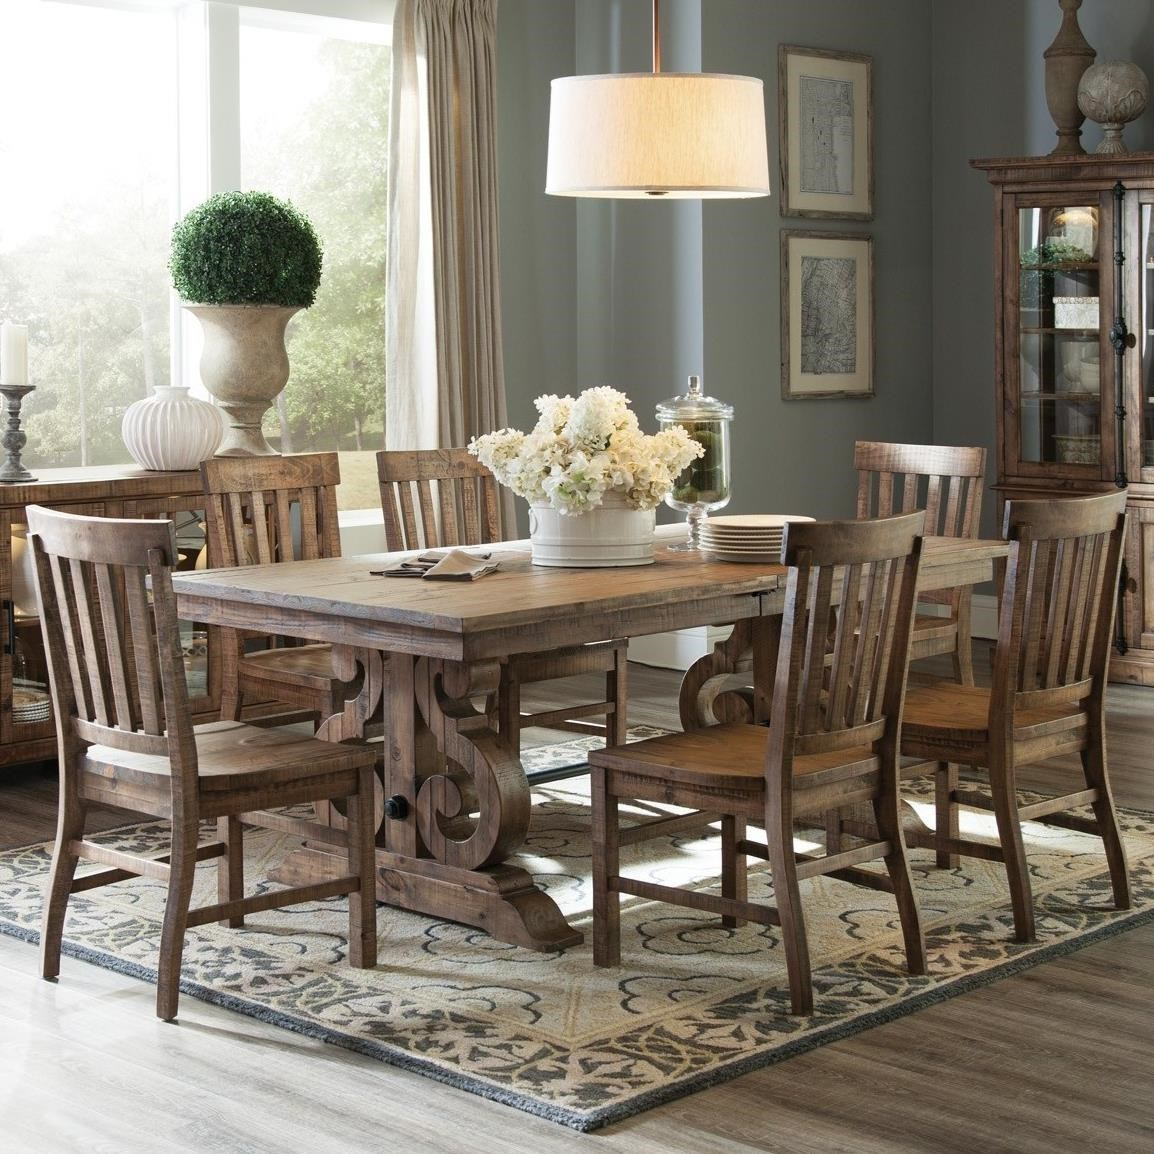 Magnussen Home Willoughby7 Piece Rectangular Dining Table Set ...